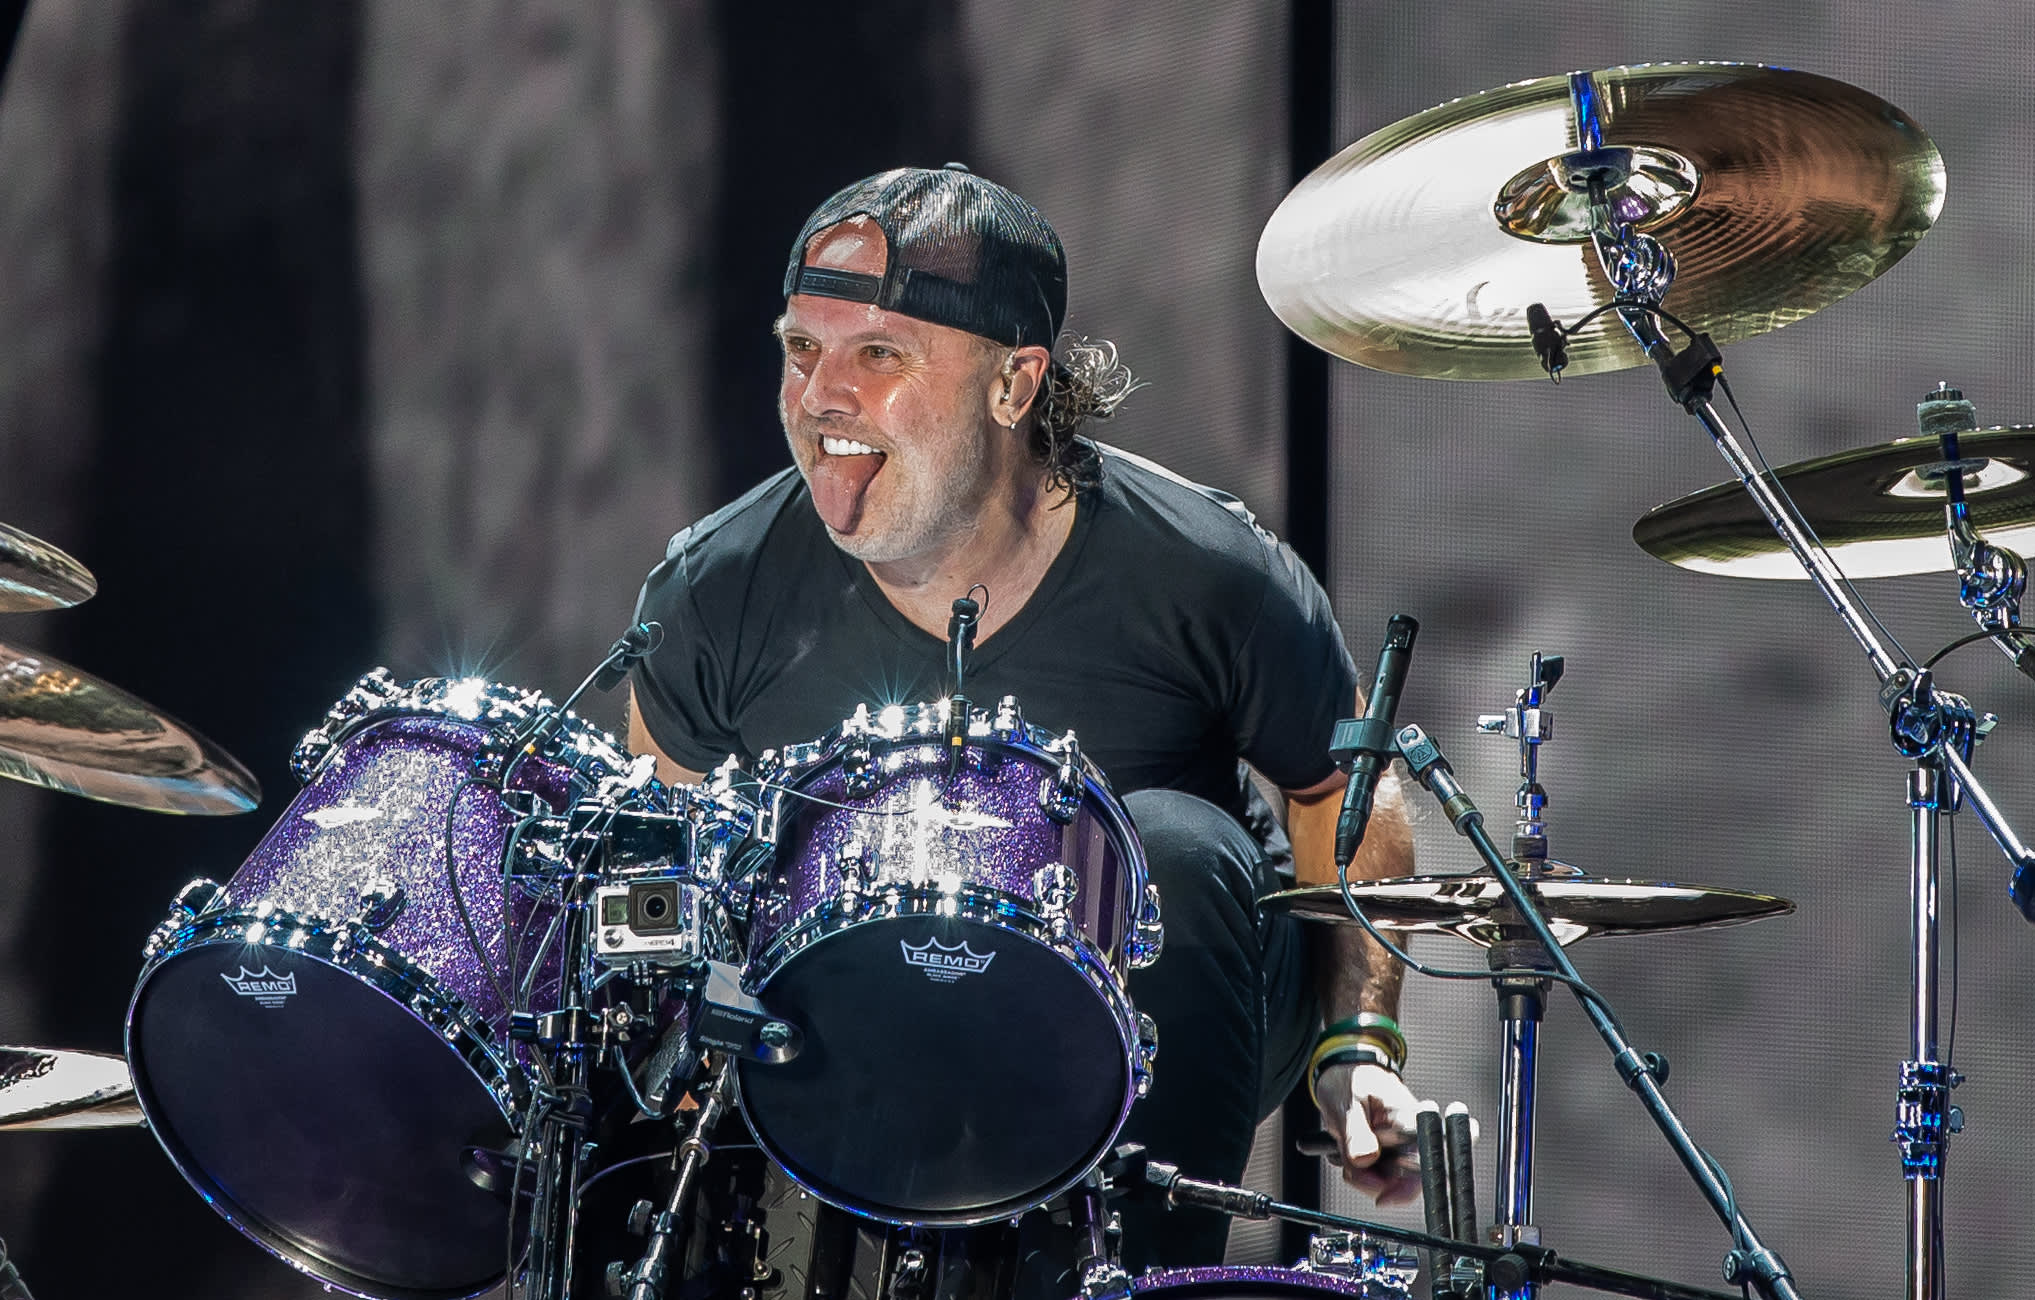 Big concerts will be 'the last thing' to return from Covid shutdowns, says Metallica's Lars Ulrich